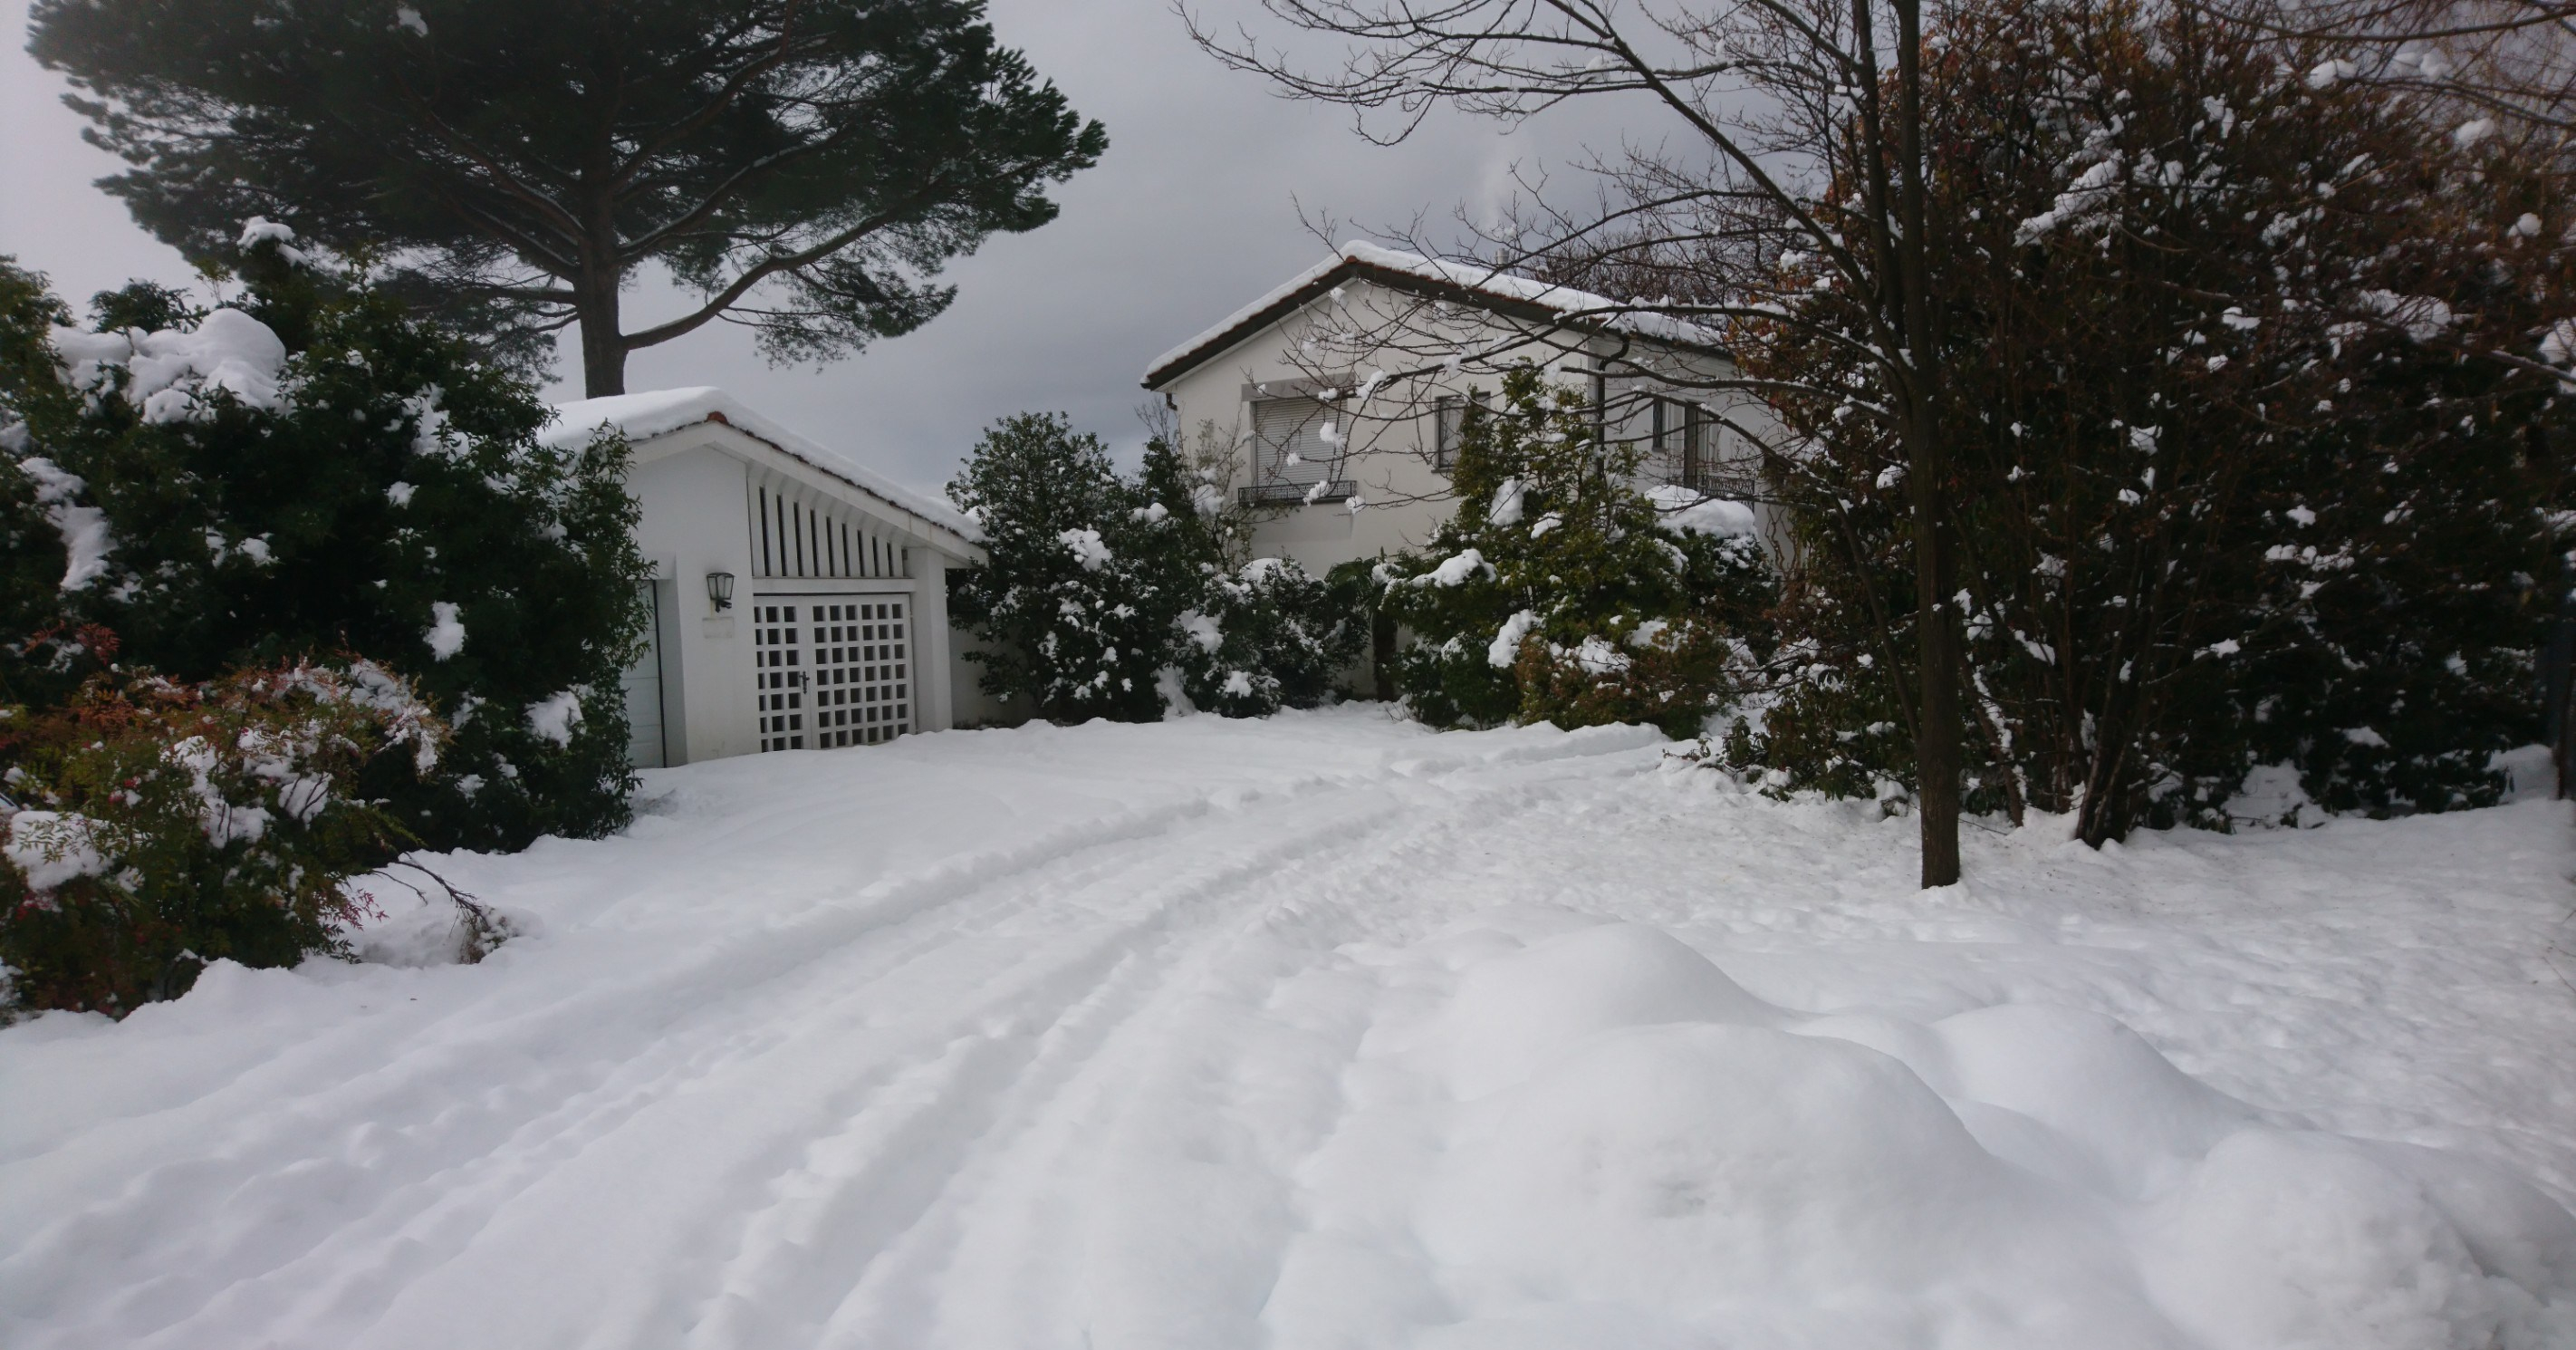 Houses, trees and street covered with snow.